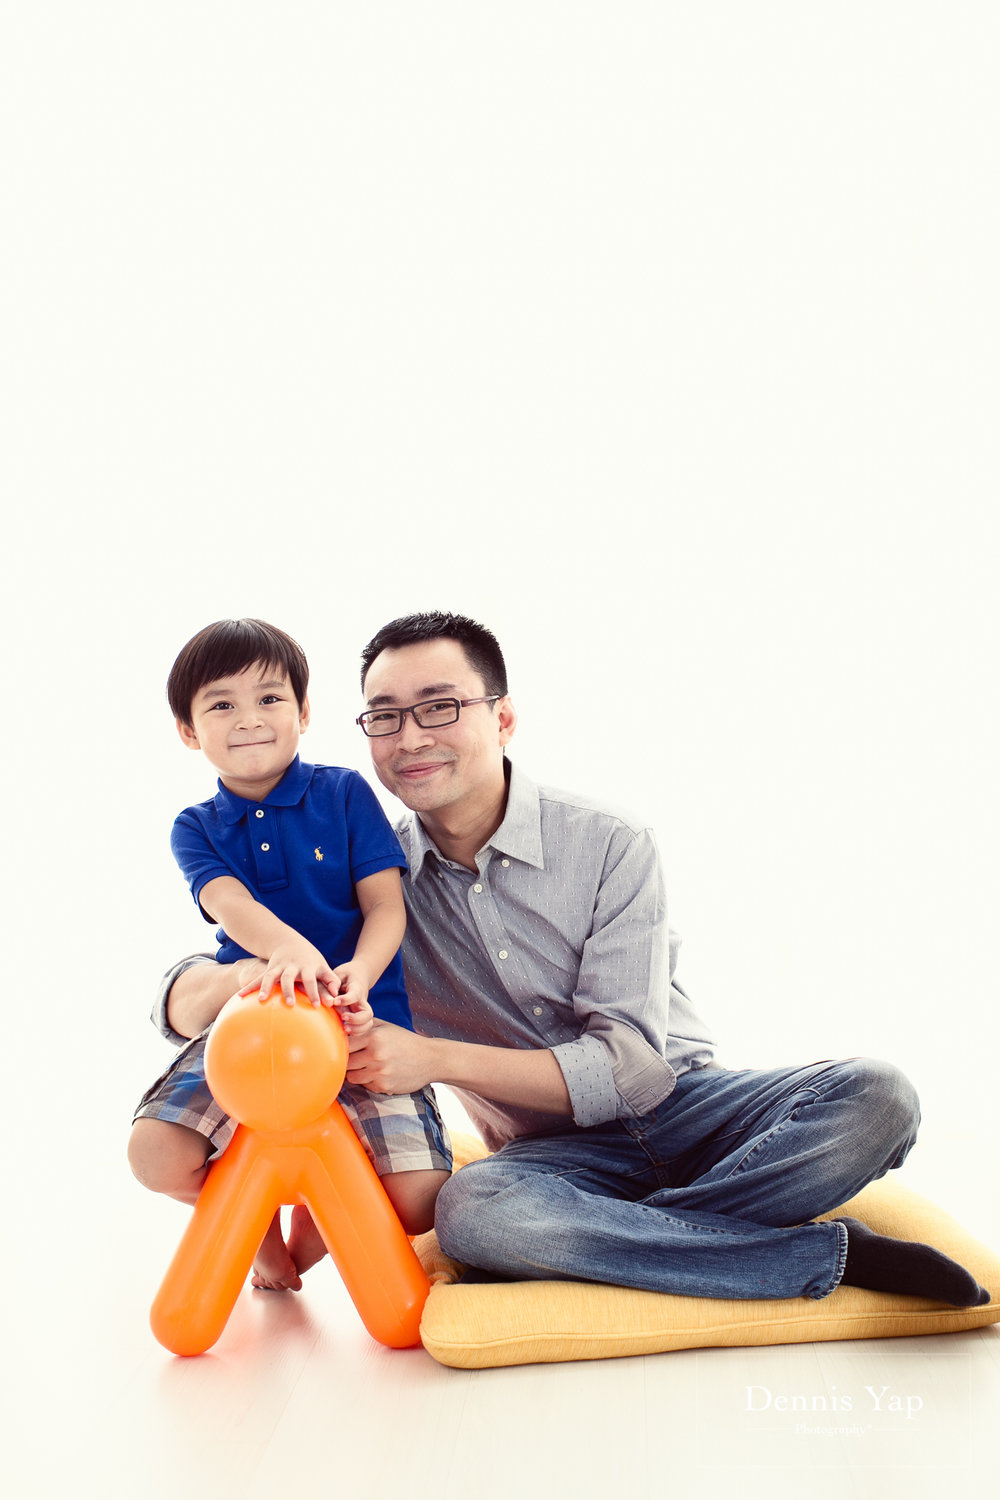 agnes chinese new year family portrait dennis yap photography malaysia wedding photographer-3.jpg